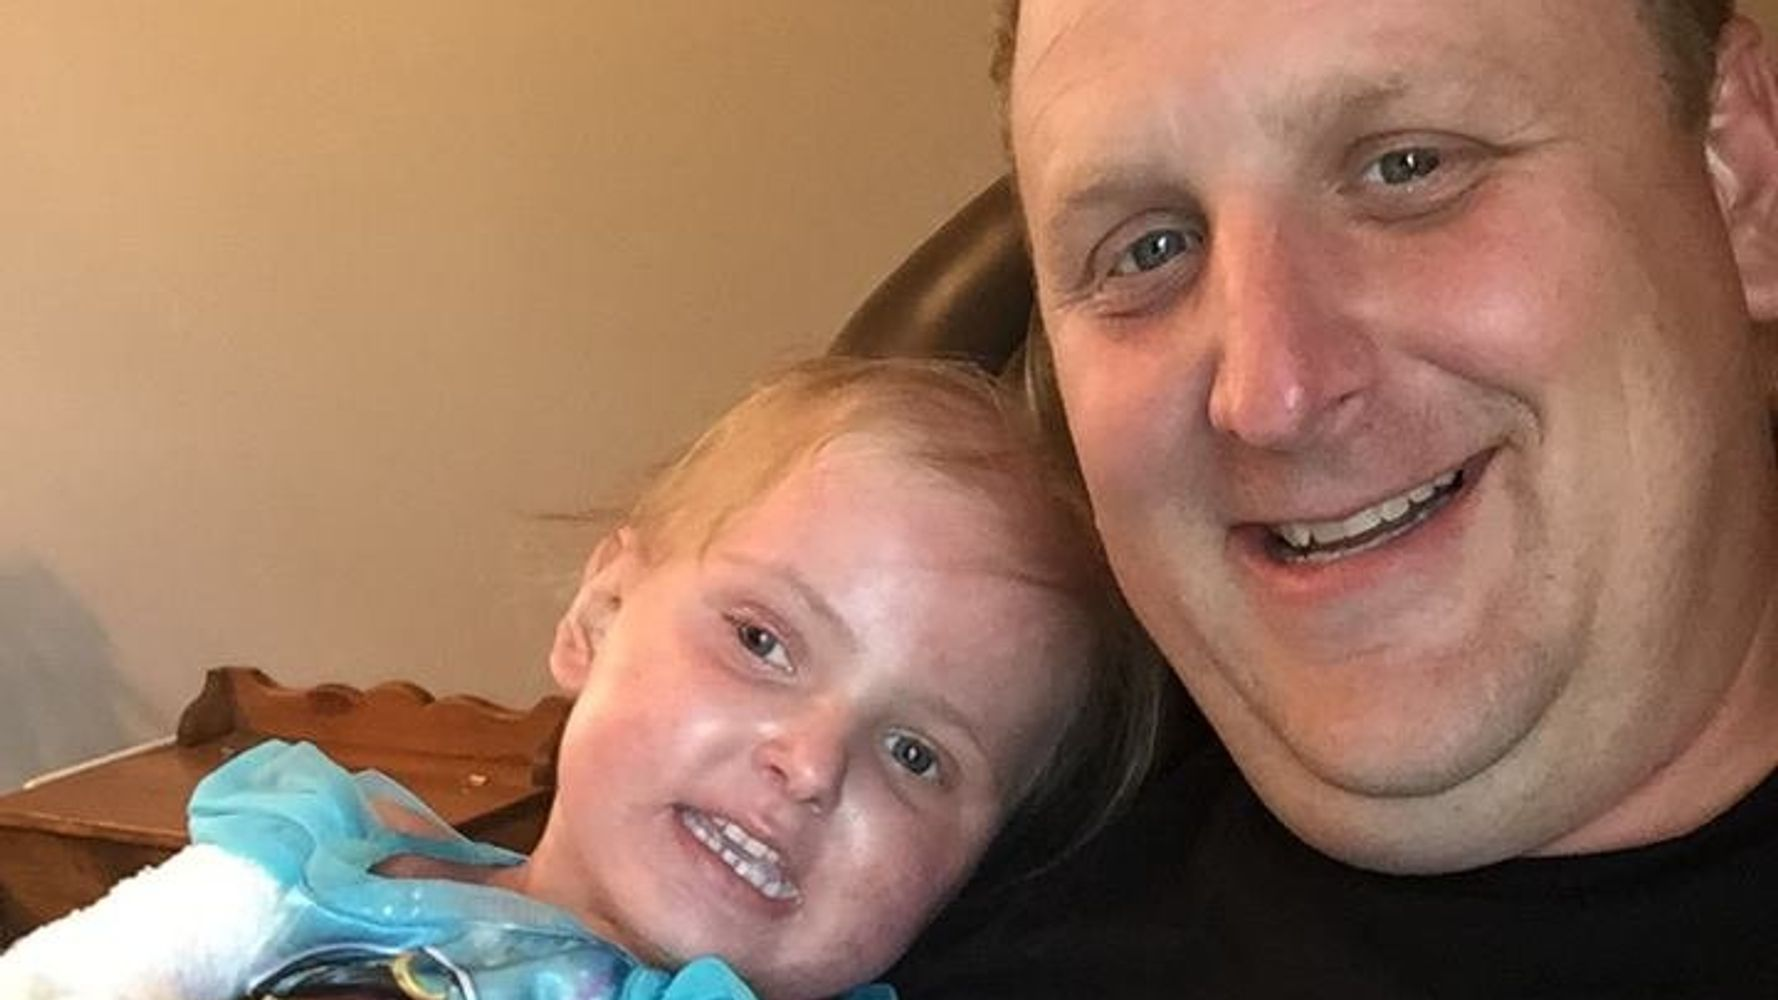 Dad Criticised For Carrying 6-Year-Old, Teaches Stranger Why You Shouldn't Judge Others